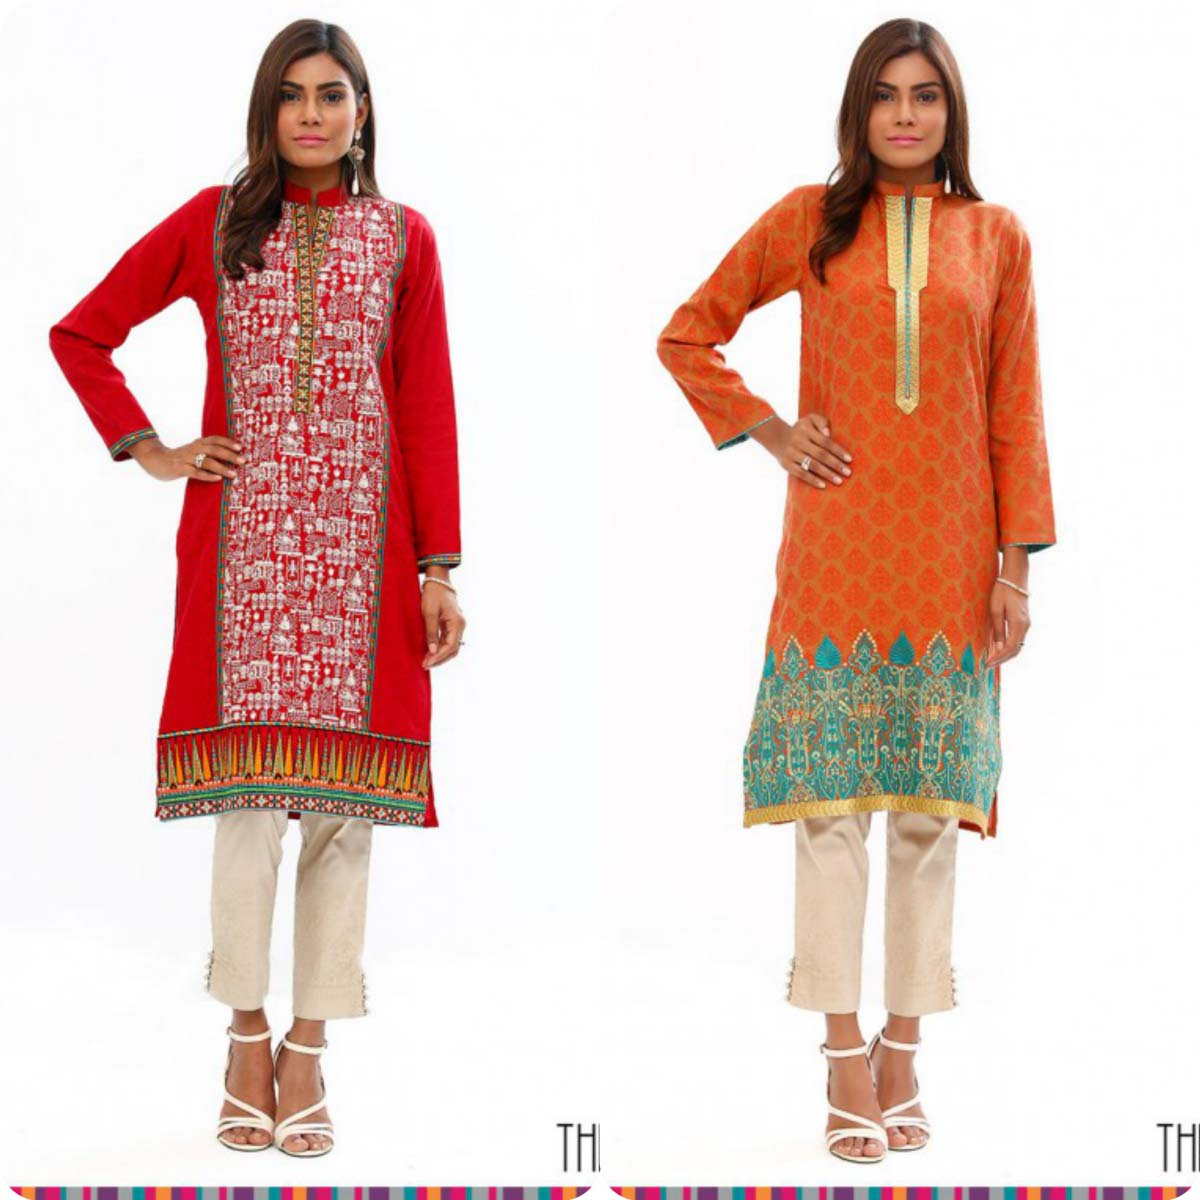 Stylish Embroidered Eid KurtisTunics for Girls By THREDZ 2016-2016 Complete Look-Book (12)